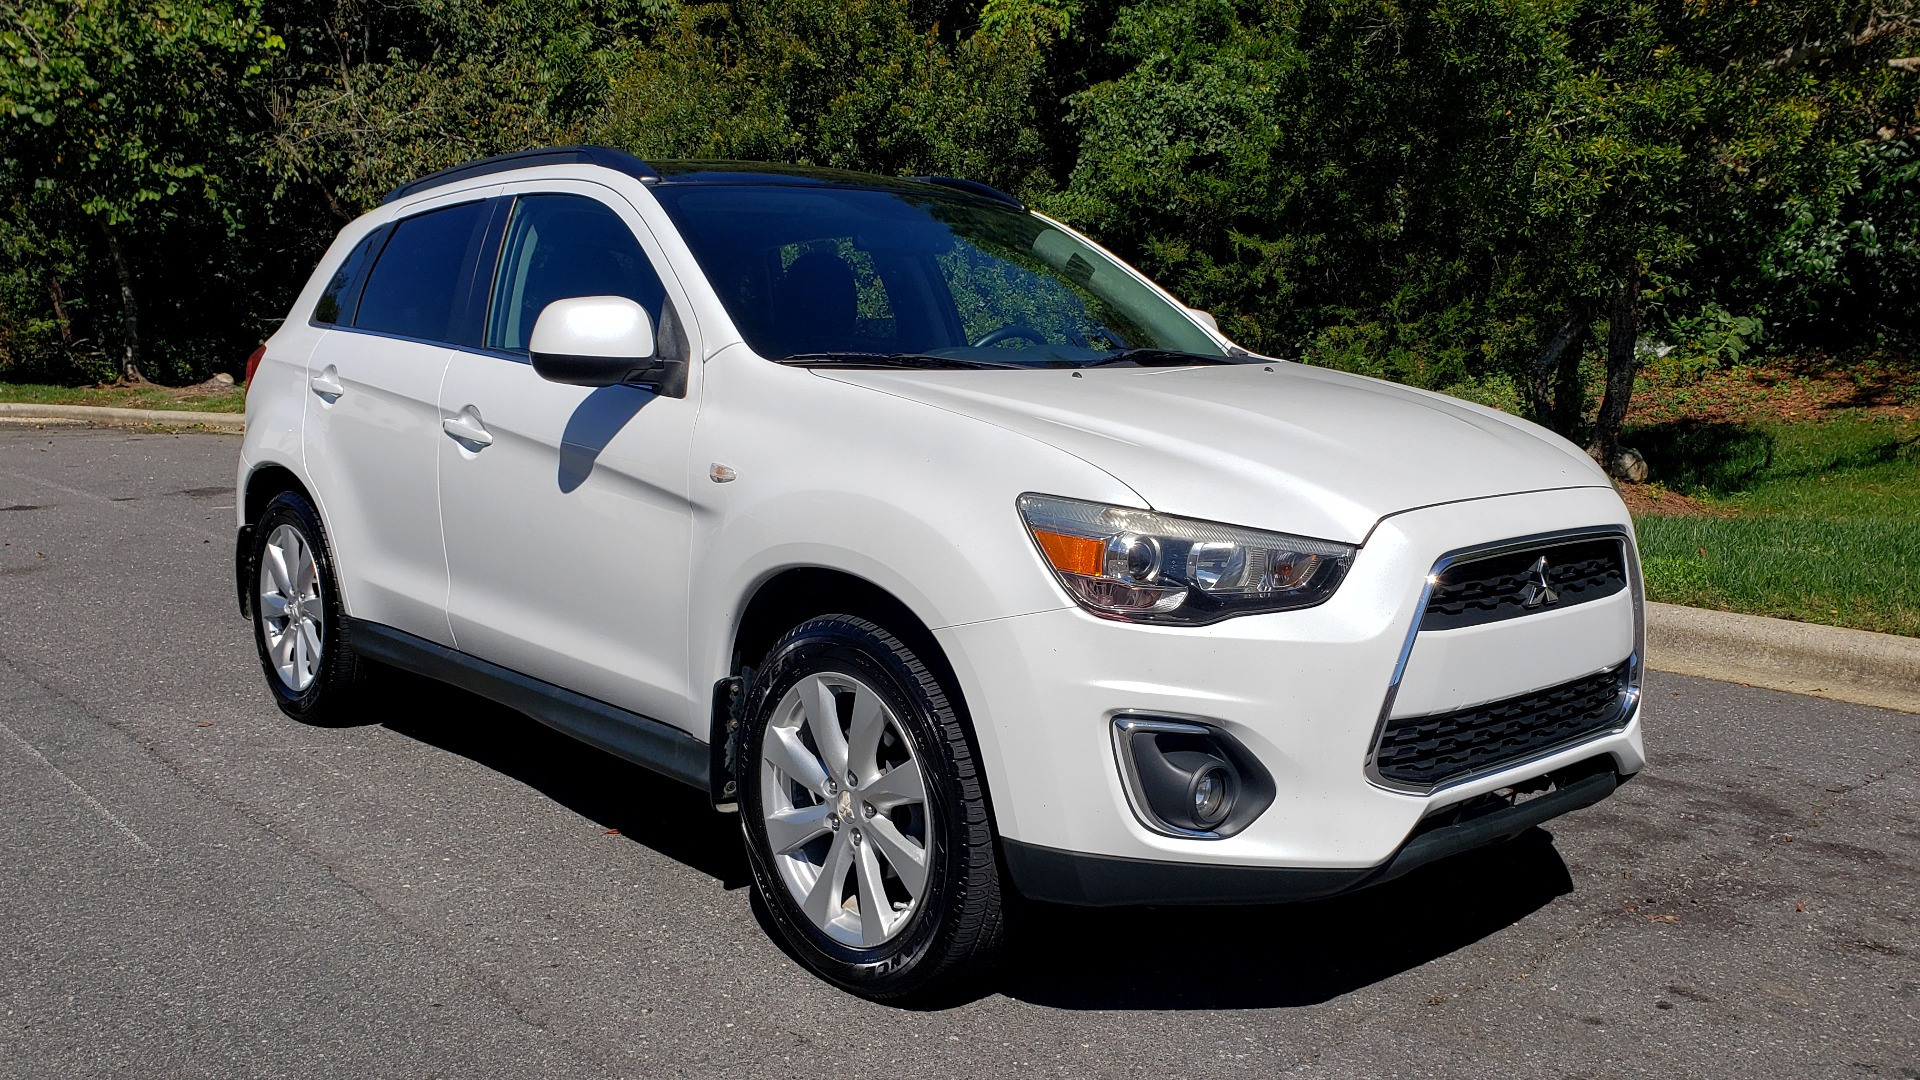 Used 2013 Mitsubishi OUTLANDER SPORT SE / 2WD / 4-DR SUV / CVT TRANS / PREMIUM SOUND / REARVIEW for sale Sold at Formula Imports in Charlotte NC 28227 4